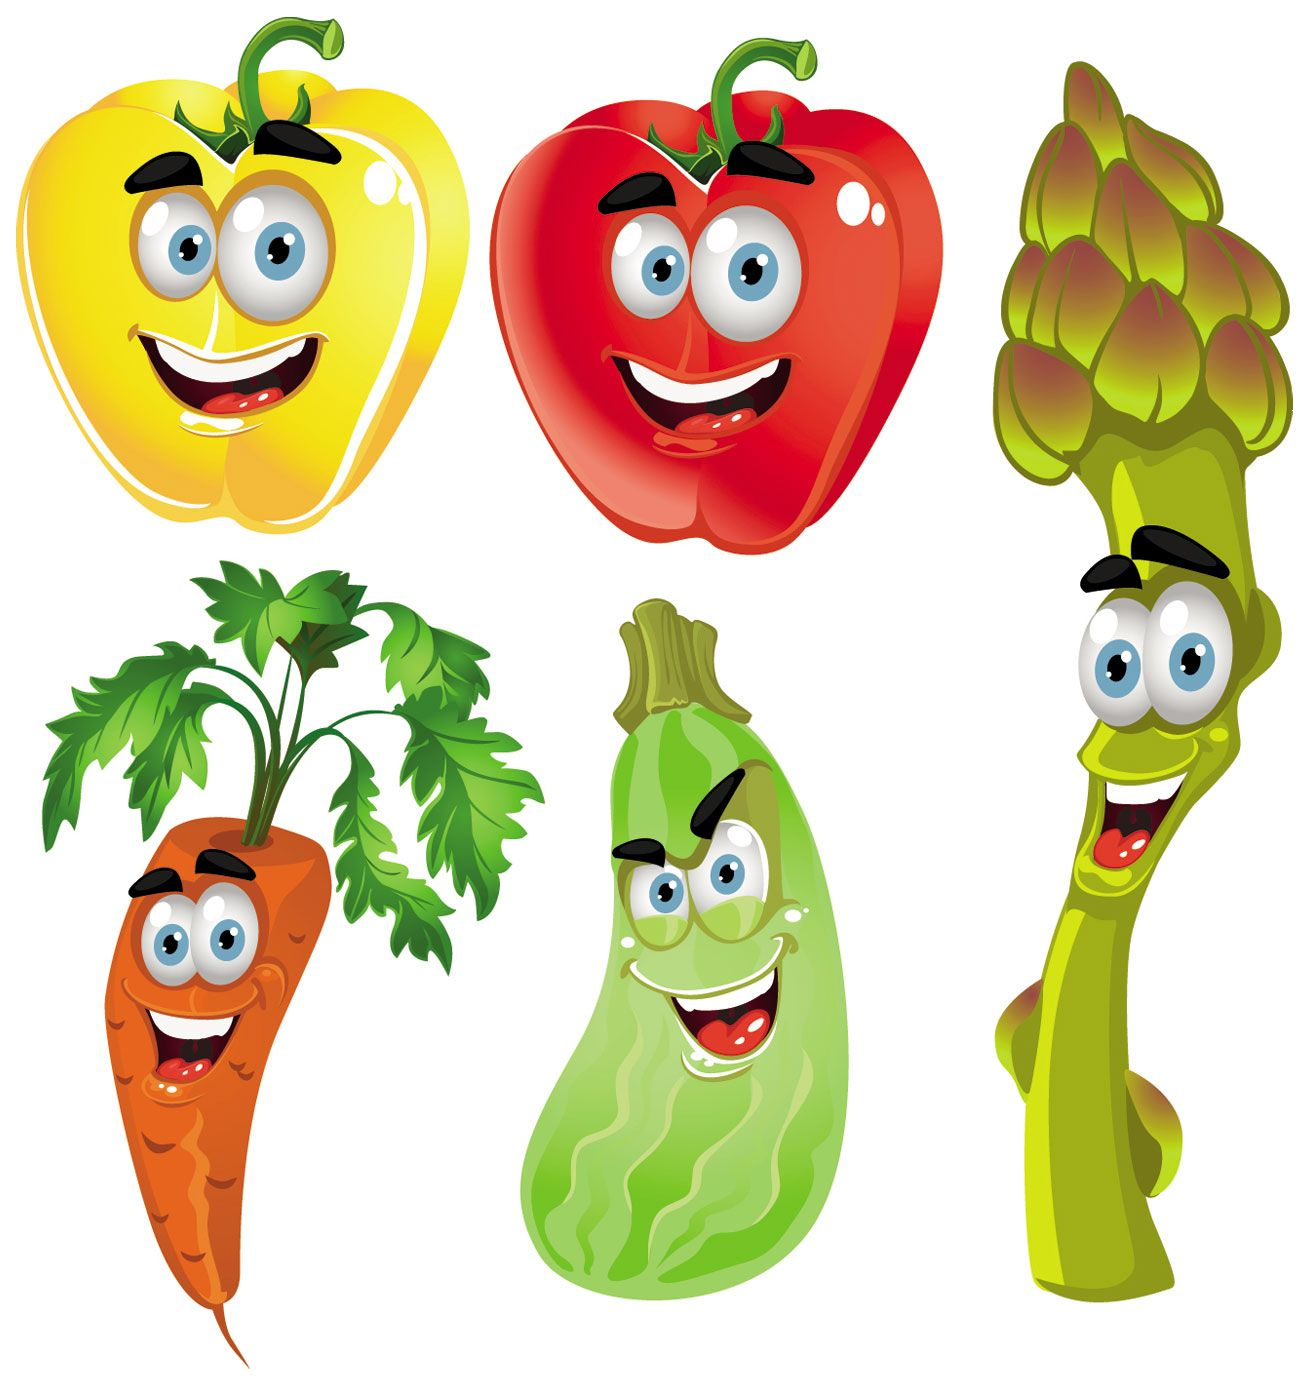 Vegetable clipart different vegetable. Fruits and vegetables cliparts